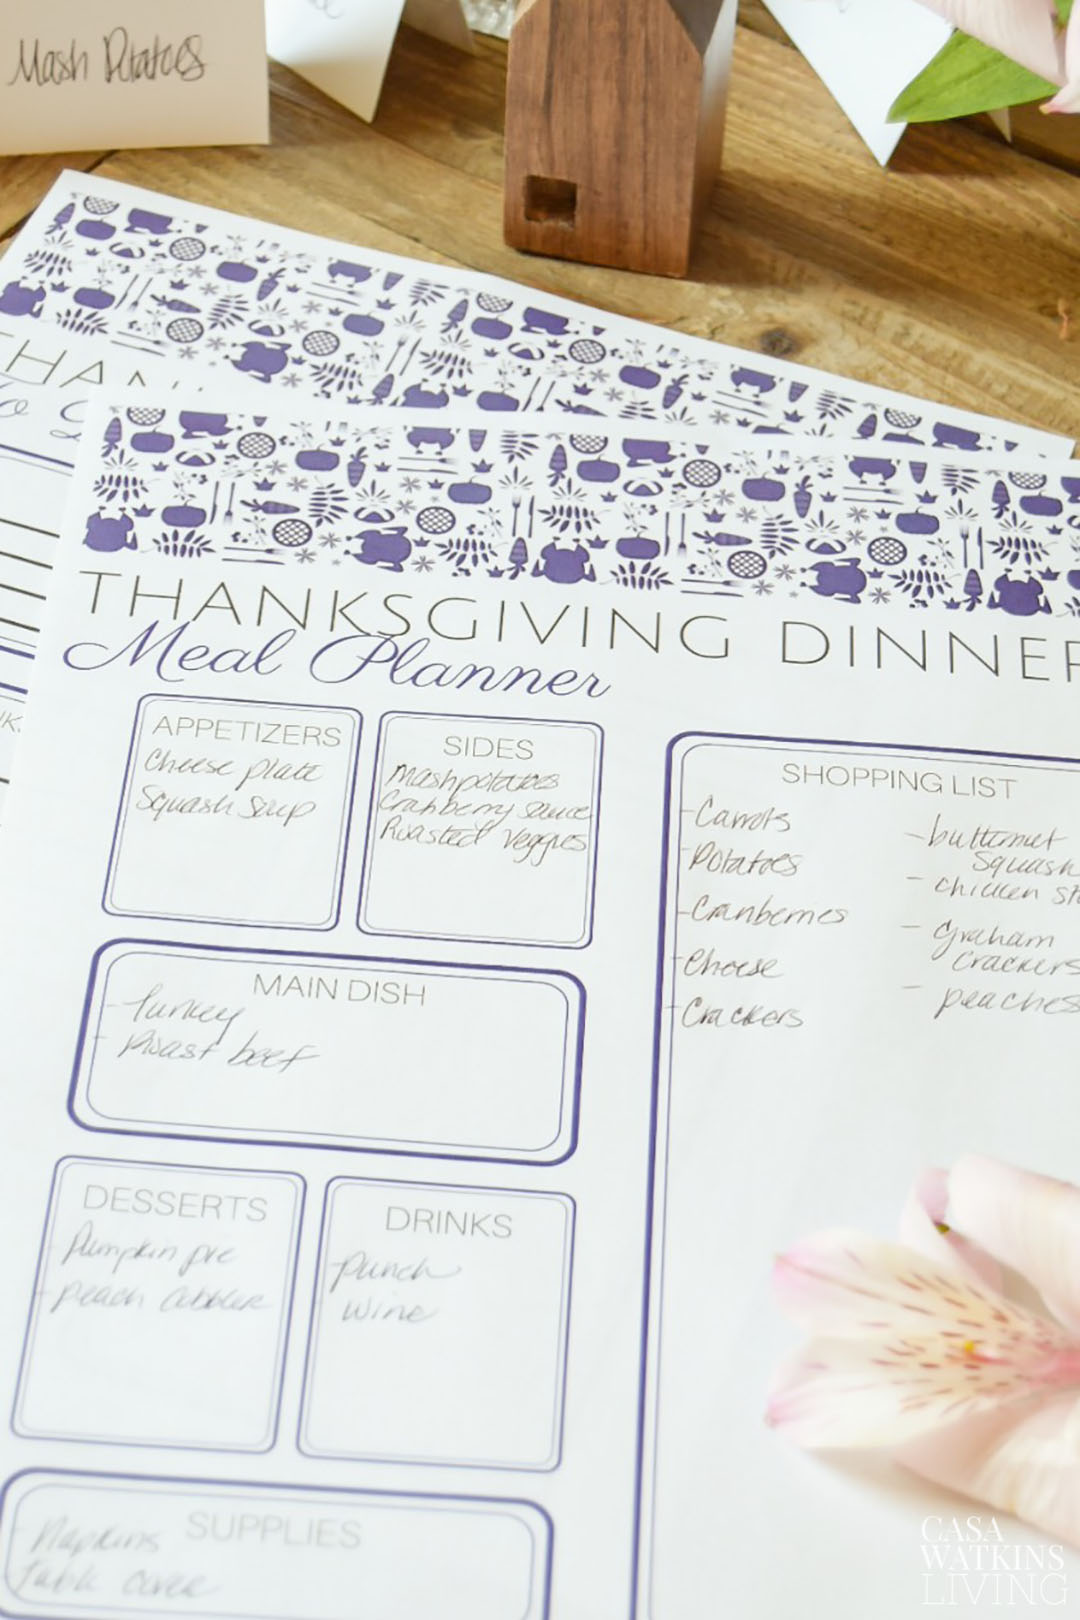 image regarding Thanksgiving Menu Planner Printable titled Otomi Thanksgiving Menu Planner Printable - Casa Watkins Dwelling